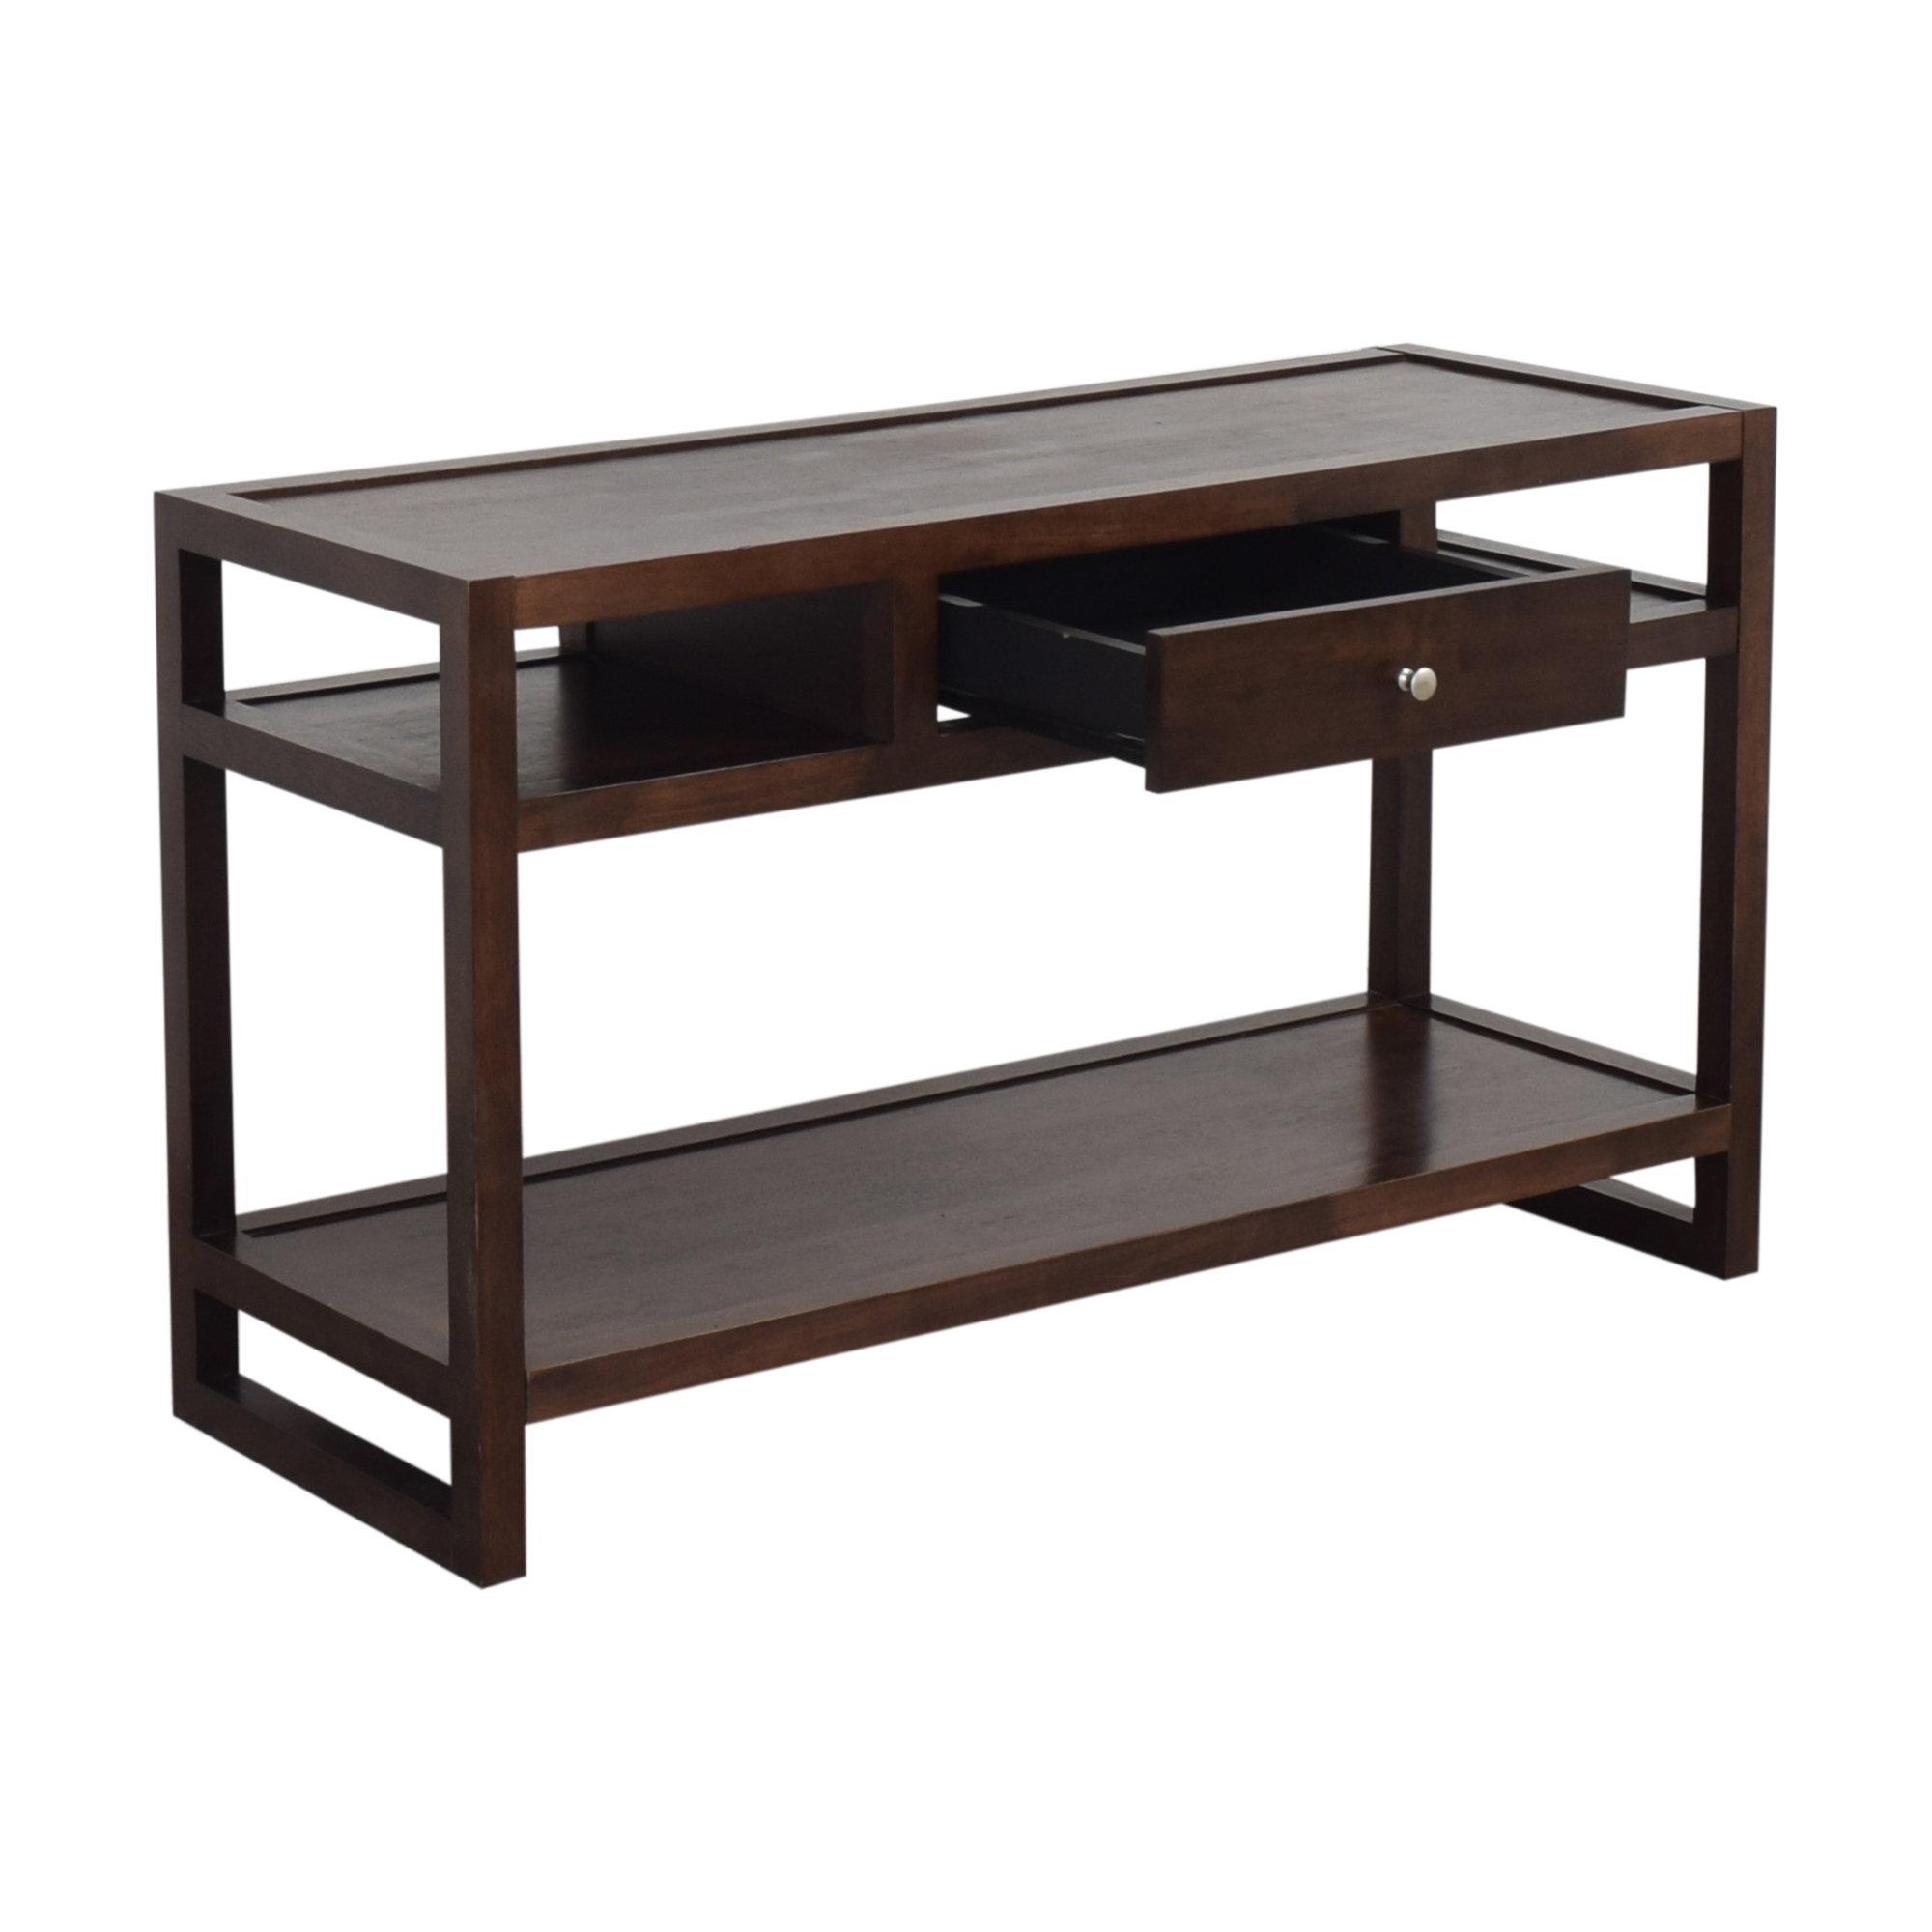 Overstock Overstock Single Drawer Console Table second hand